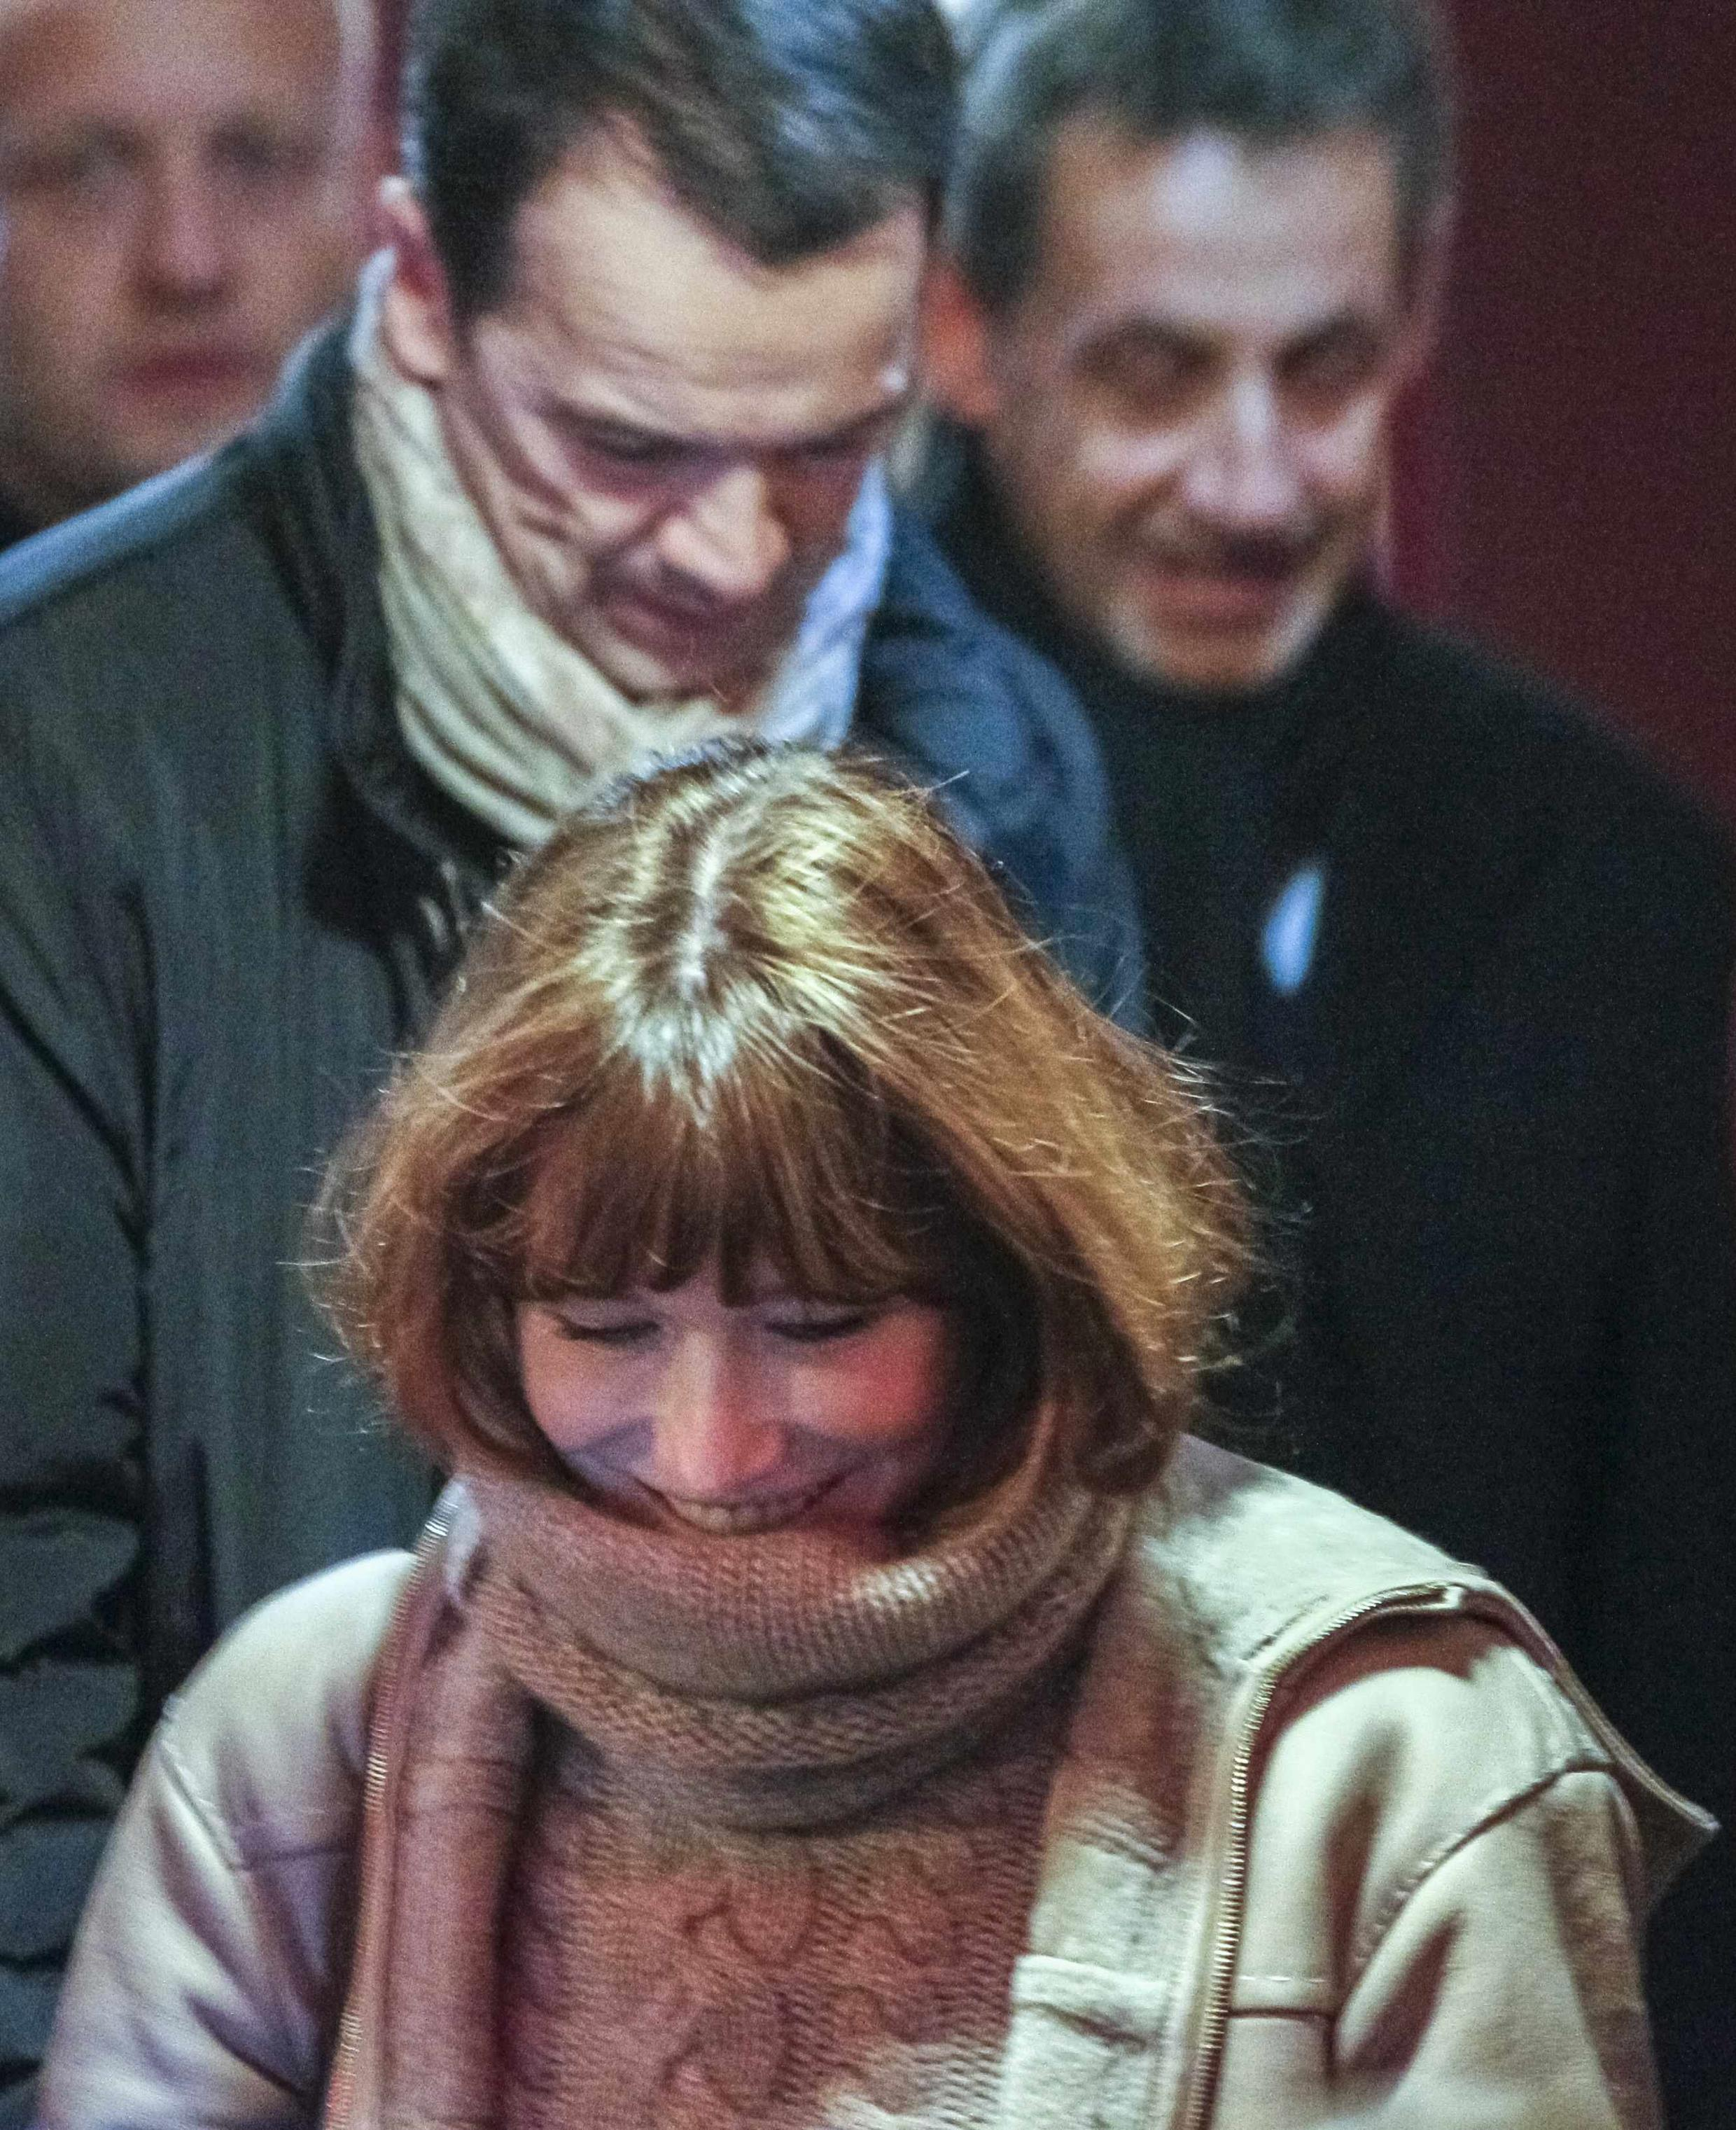 Former first lady Carla Bruni-Sarkozy leaves her concert, followed by her husband, former French President Nicolas Sarkozy.